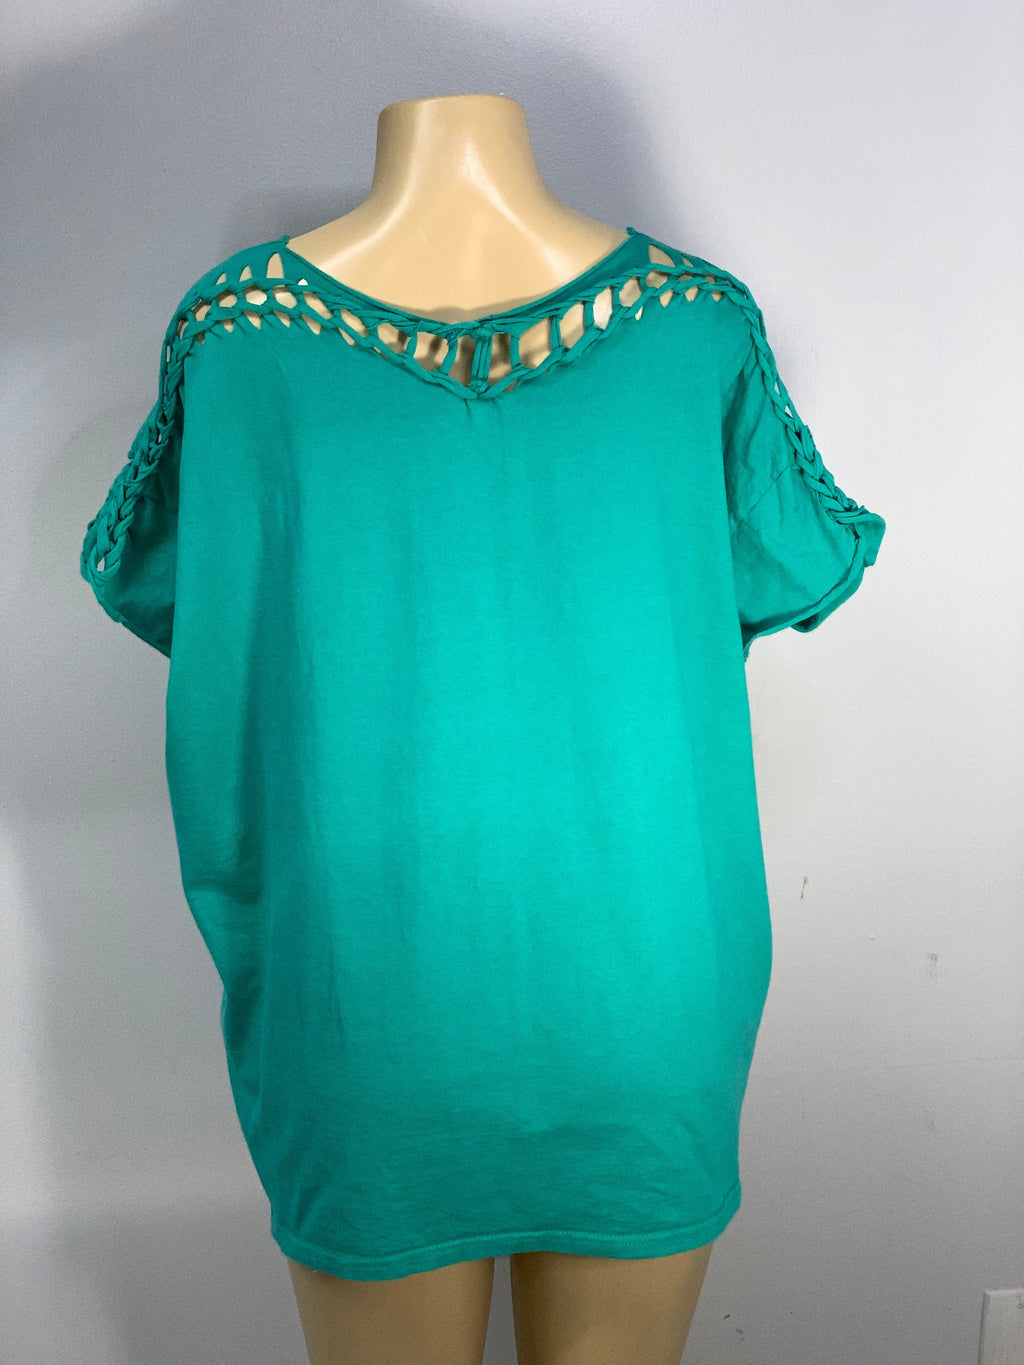 Sassy Shoulder Teal Green Shirt Cut Up by Sniptease Size 2XL